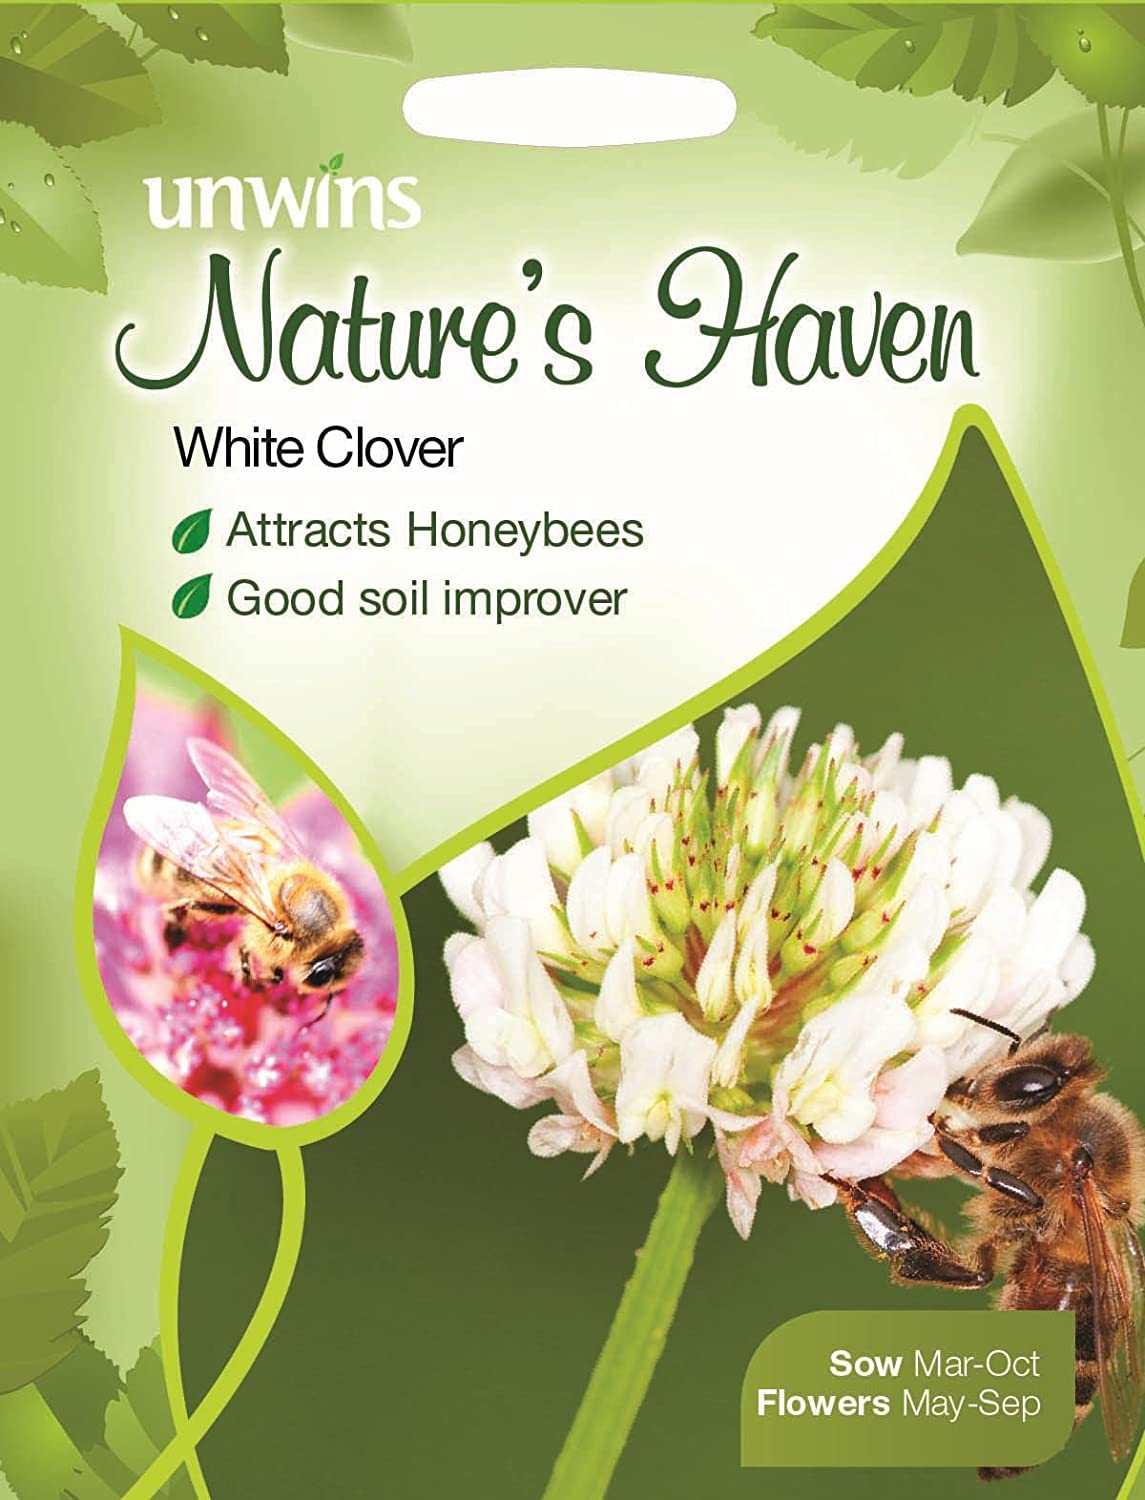 Unwins Pictorial Packet - Natures Haven White Clover - 1000 Seeds